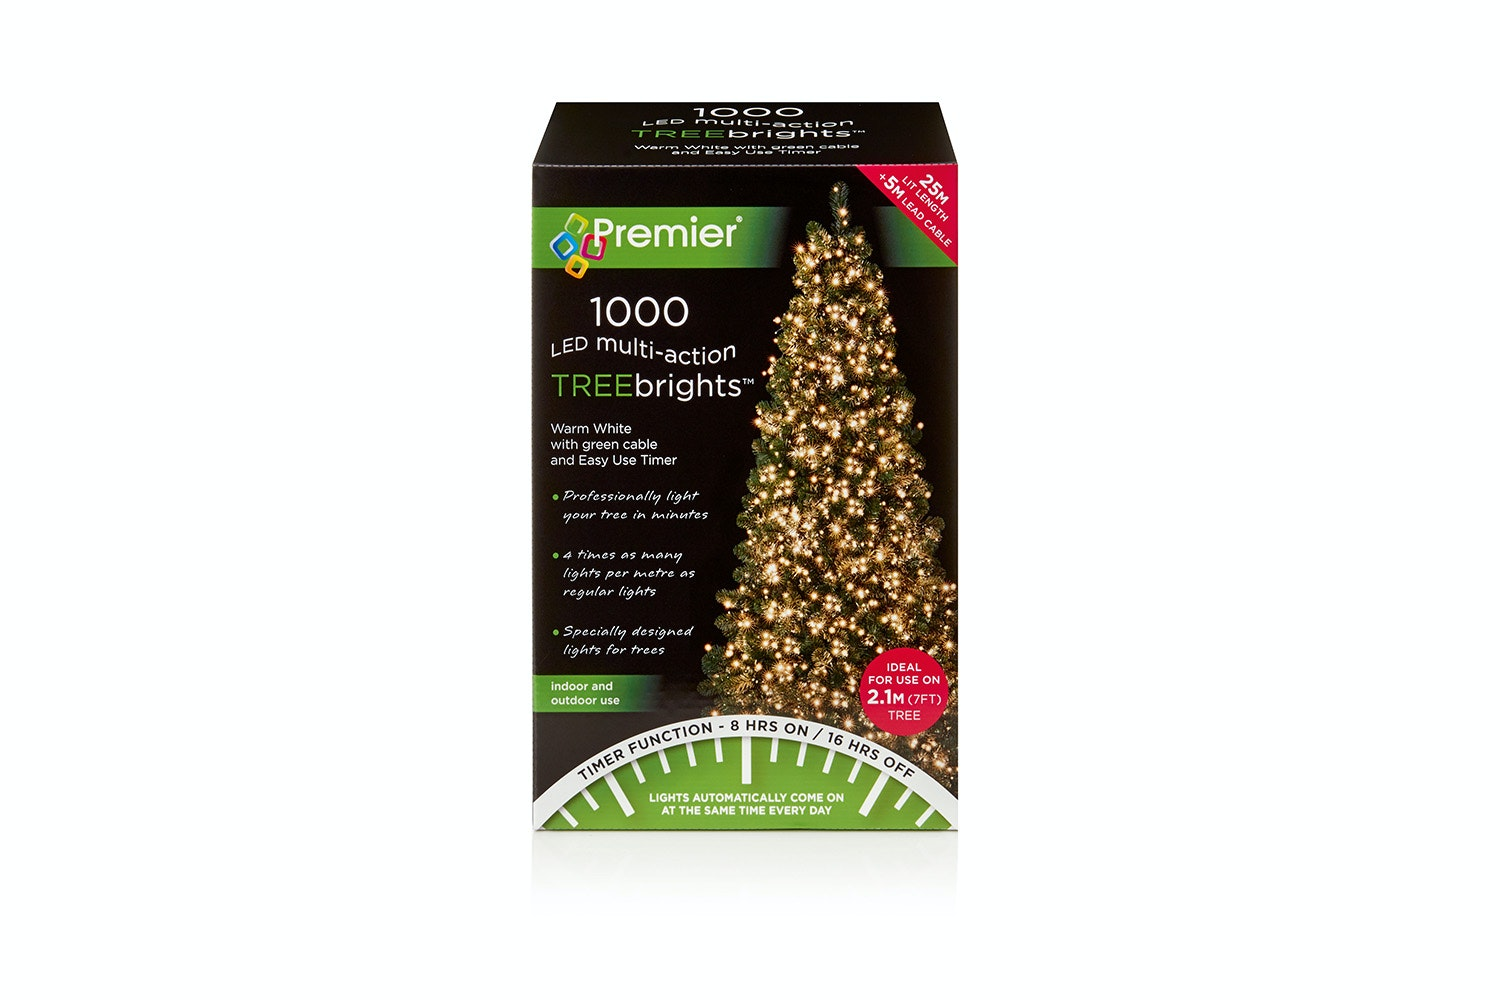 Treebright Christmas Tree Lights Traditional Golden Glow - 1000 Lights